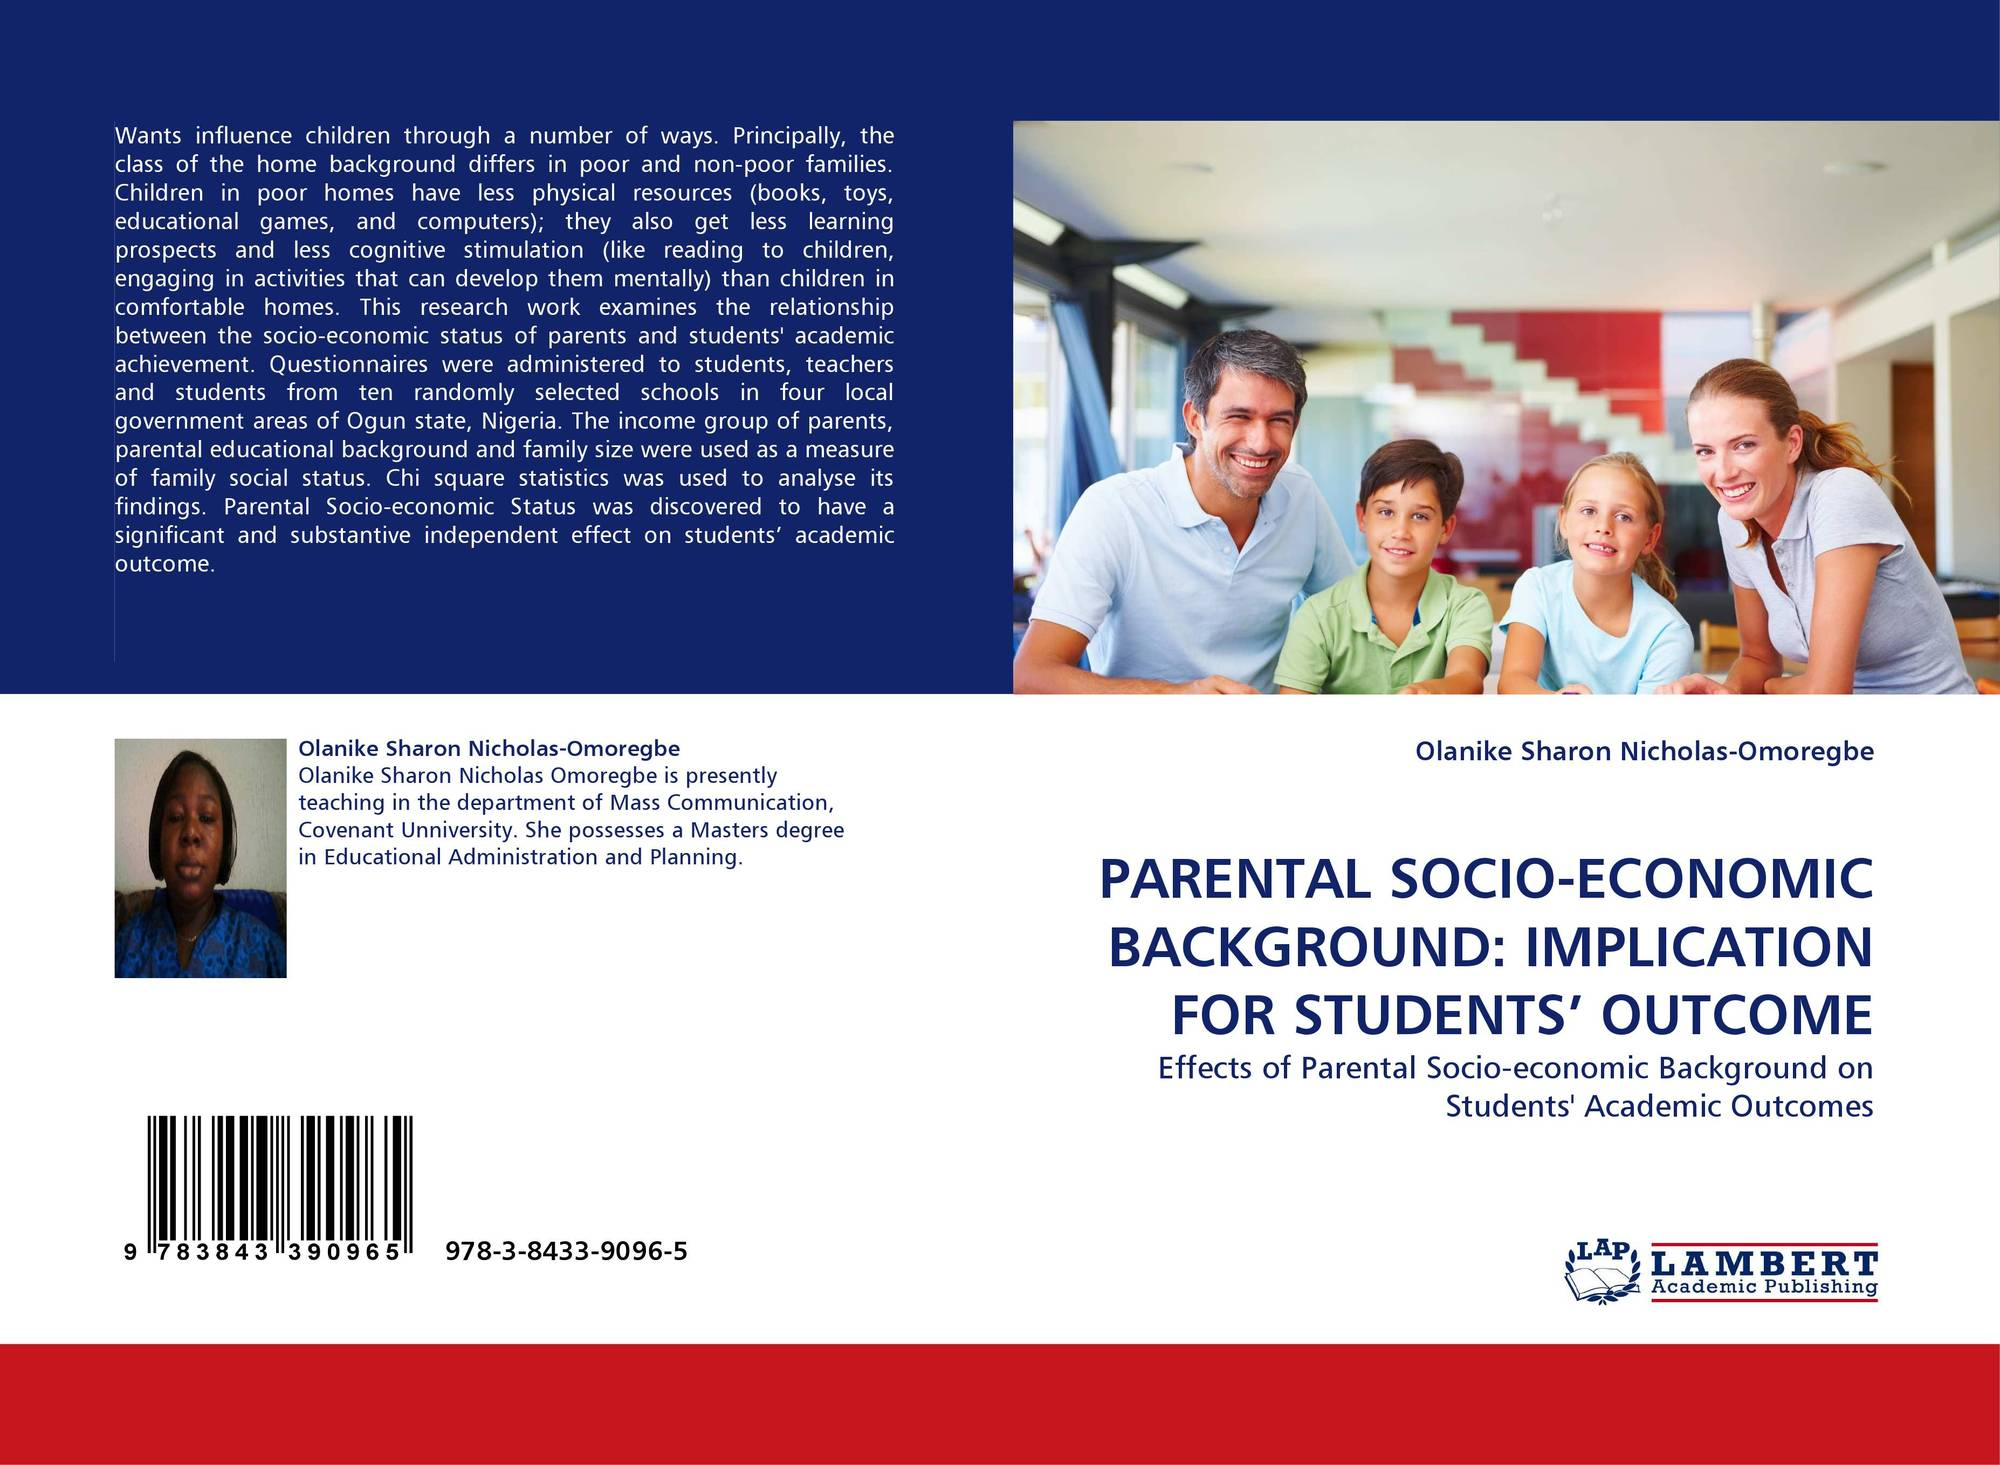 the effect of parent socio economic Implicitly, a child's family socio-economic background may impact the child's   socio-economic background plays a significant role in parent-child relationship.